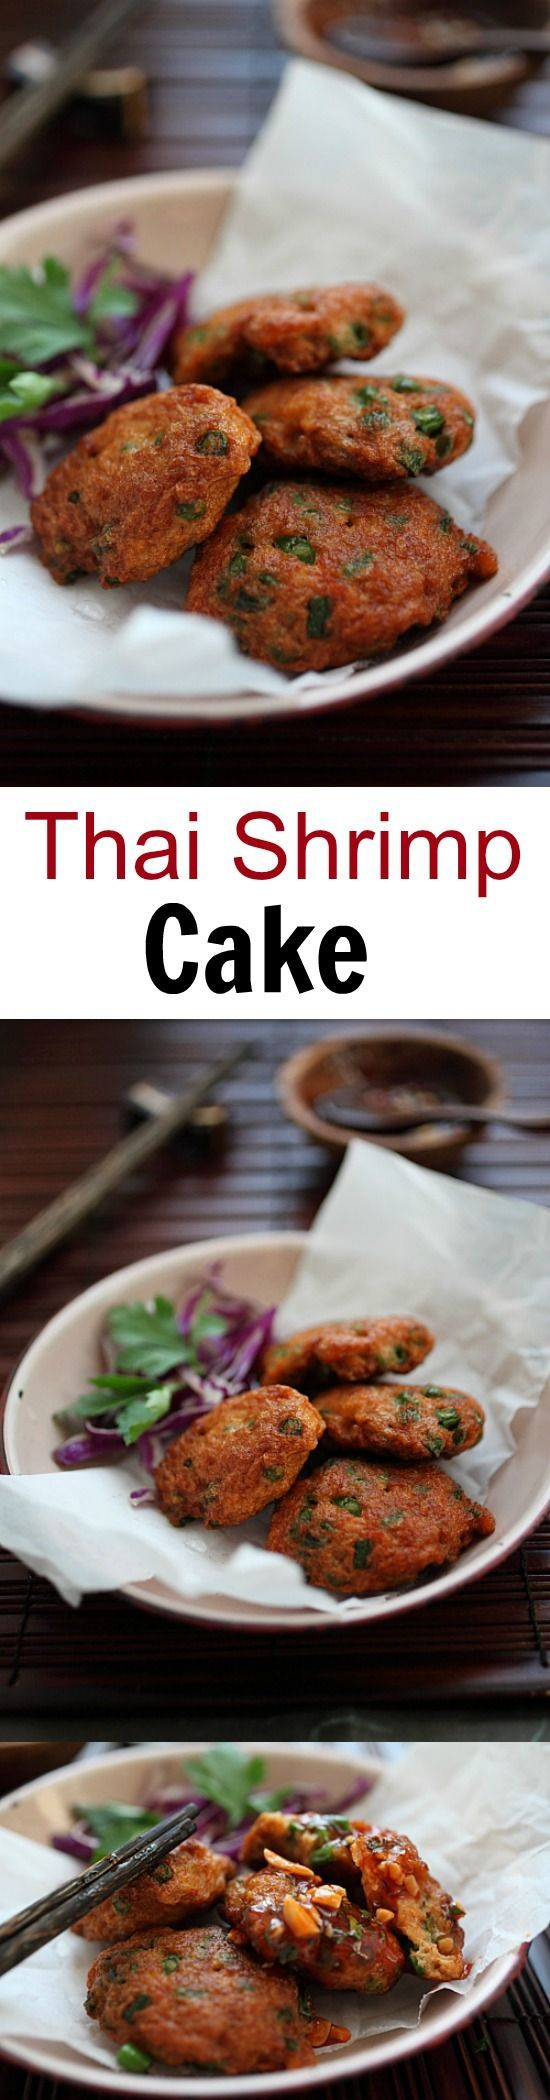 Thai Shrimp Cake - the most amazing and delicious Thai shrimp cake ever, with sweet chili sauce. Get the easy recipe now!! | http://rasamalaysia.com